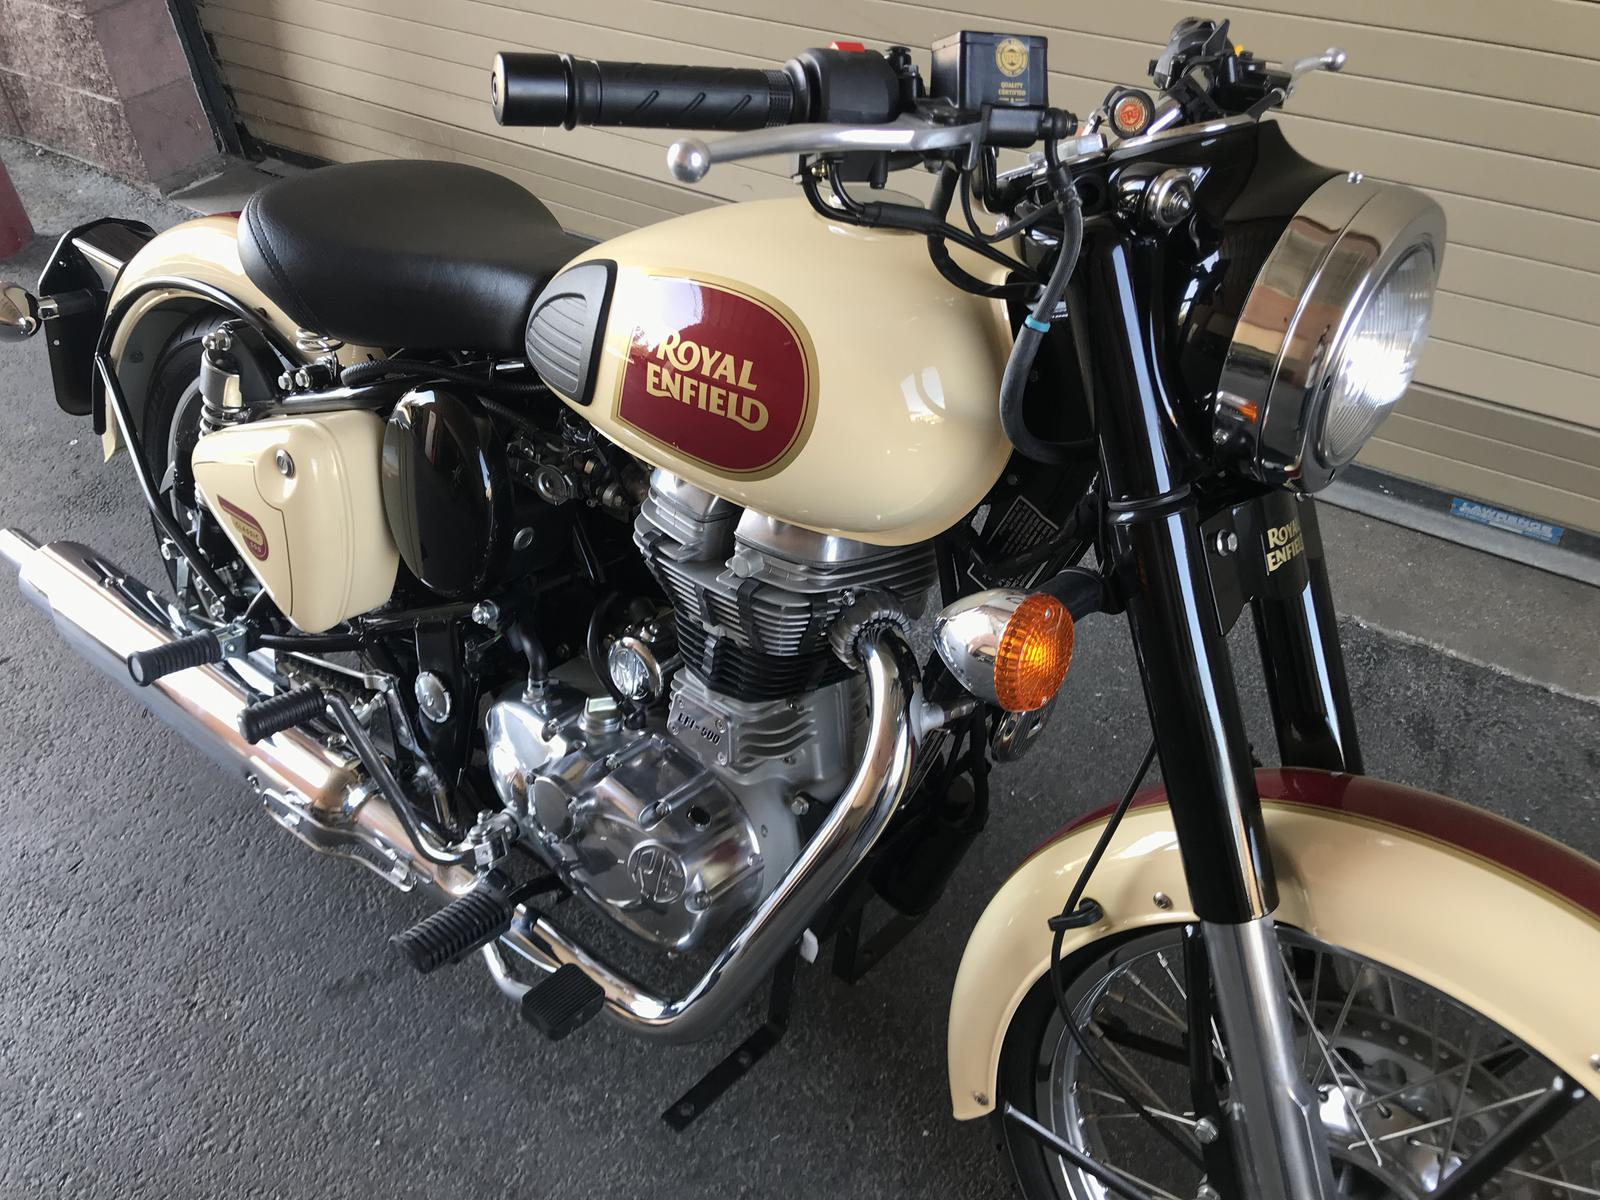 2017 Royal Enfield CLASSIC 500 for sale in Las Vegas NV